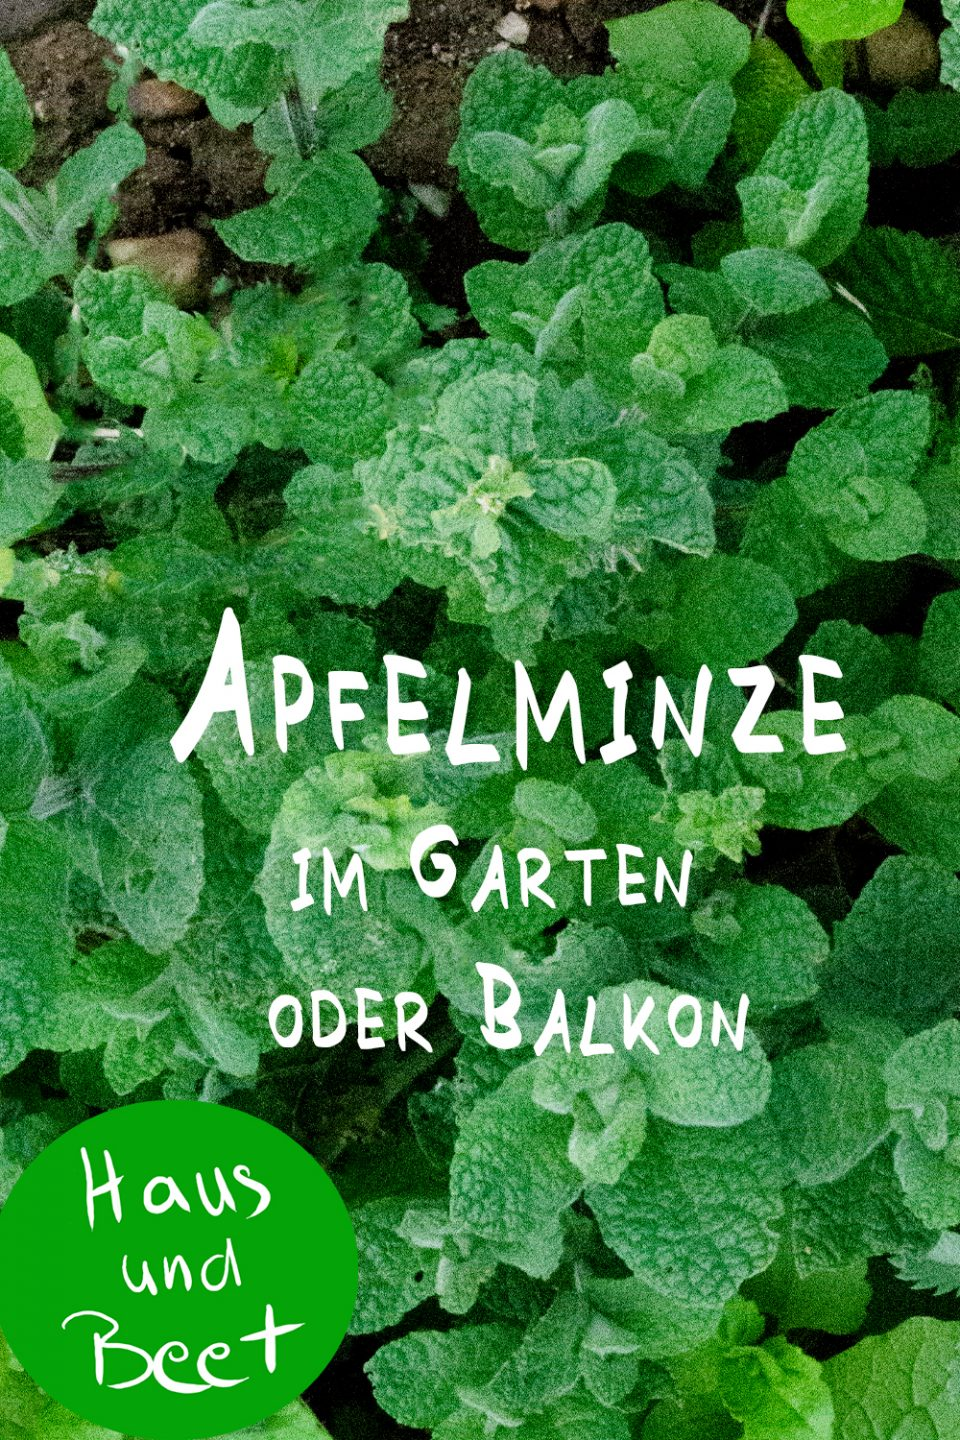 Apfelminze